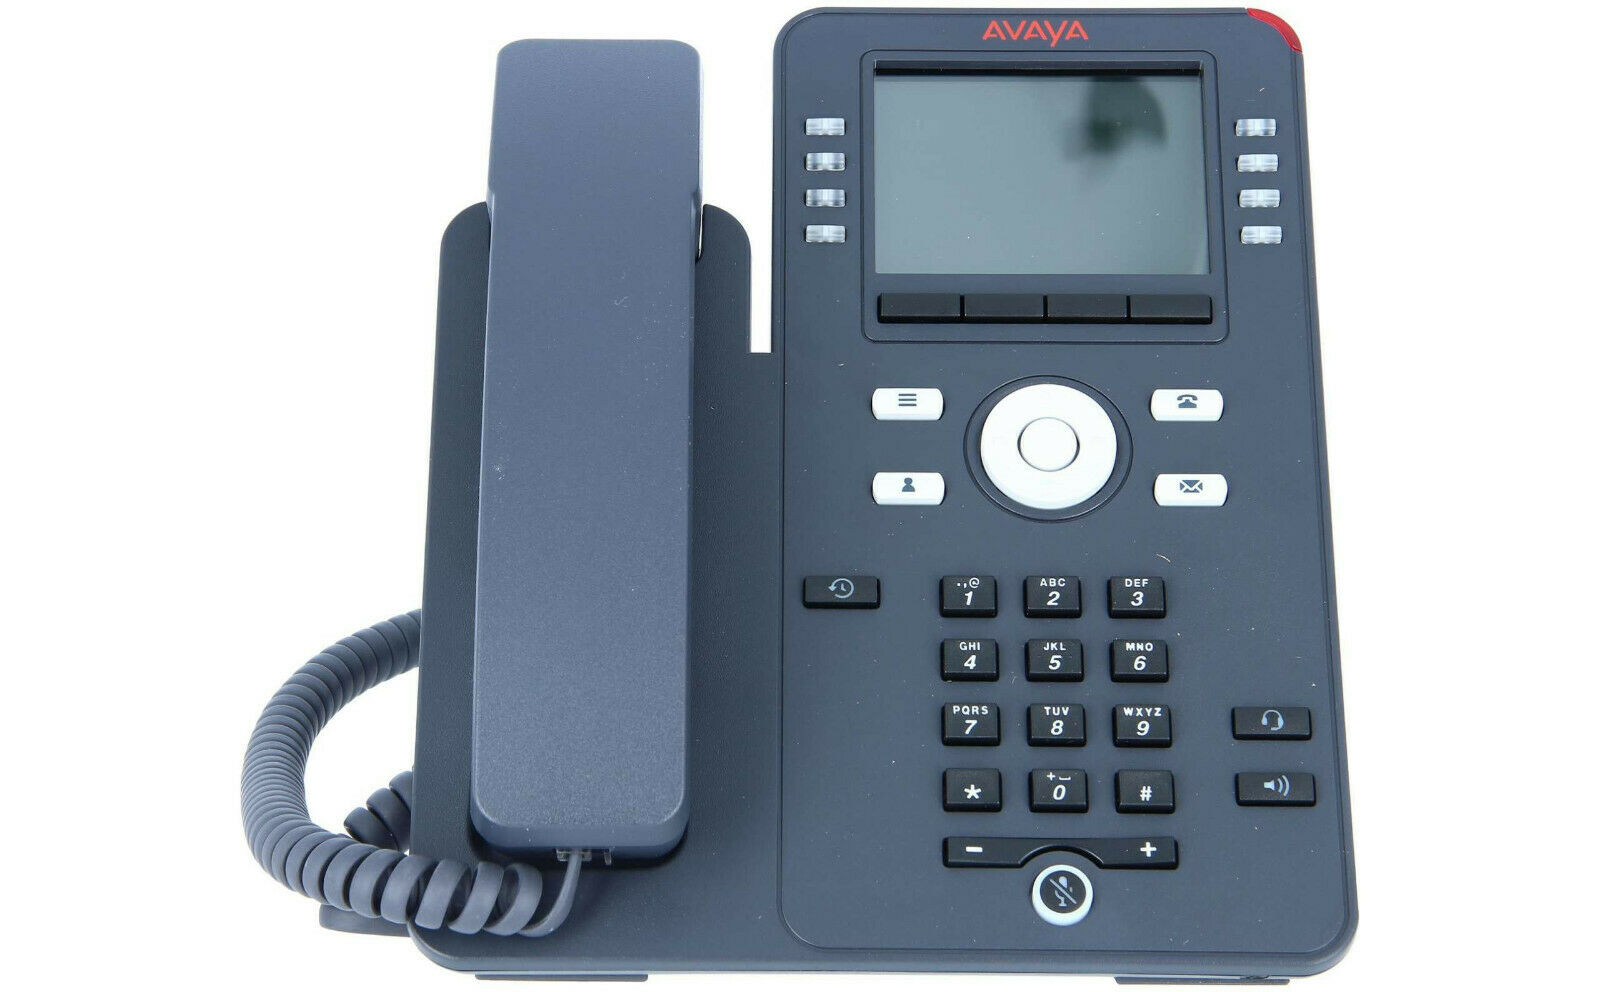 Avaya J169 IP Phone - Grade A Manufacturer Refurbished